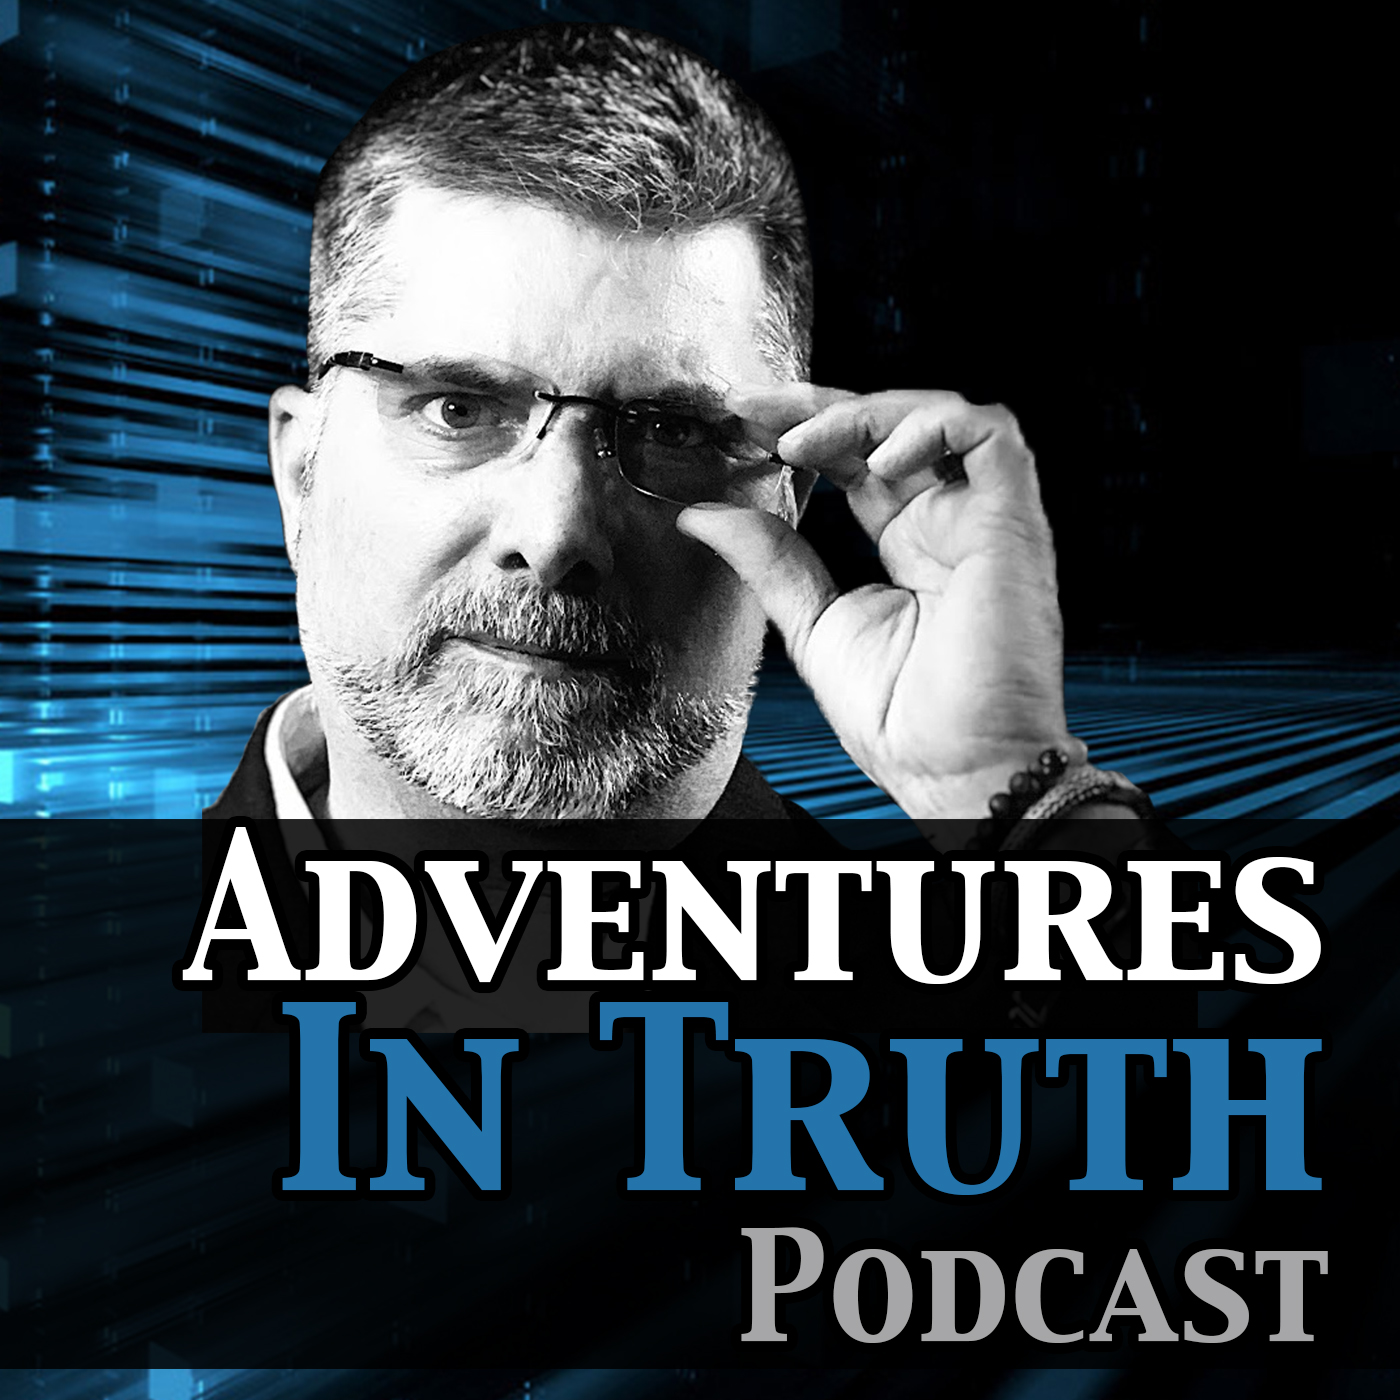 Artwork for podcast Adventures in Truth Podcast